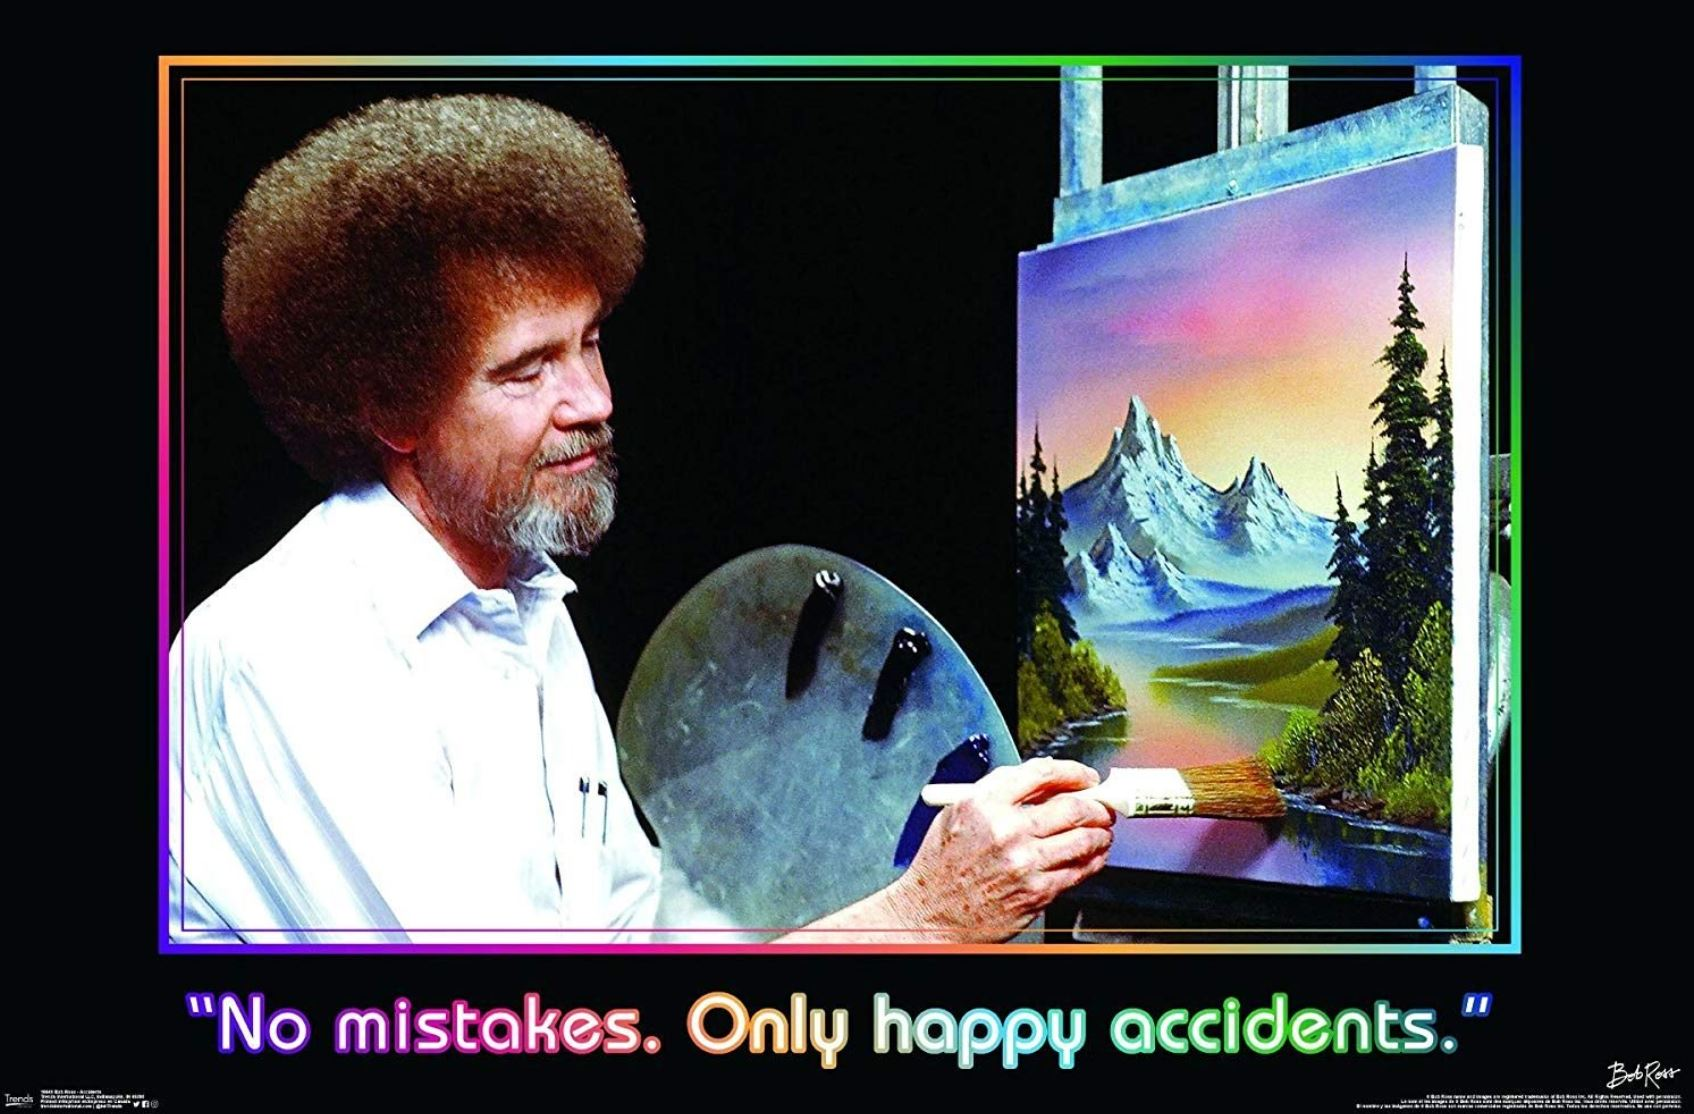 Image of Painter Bob Ross painting a landscape with mountains and trees